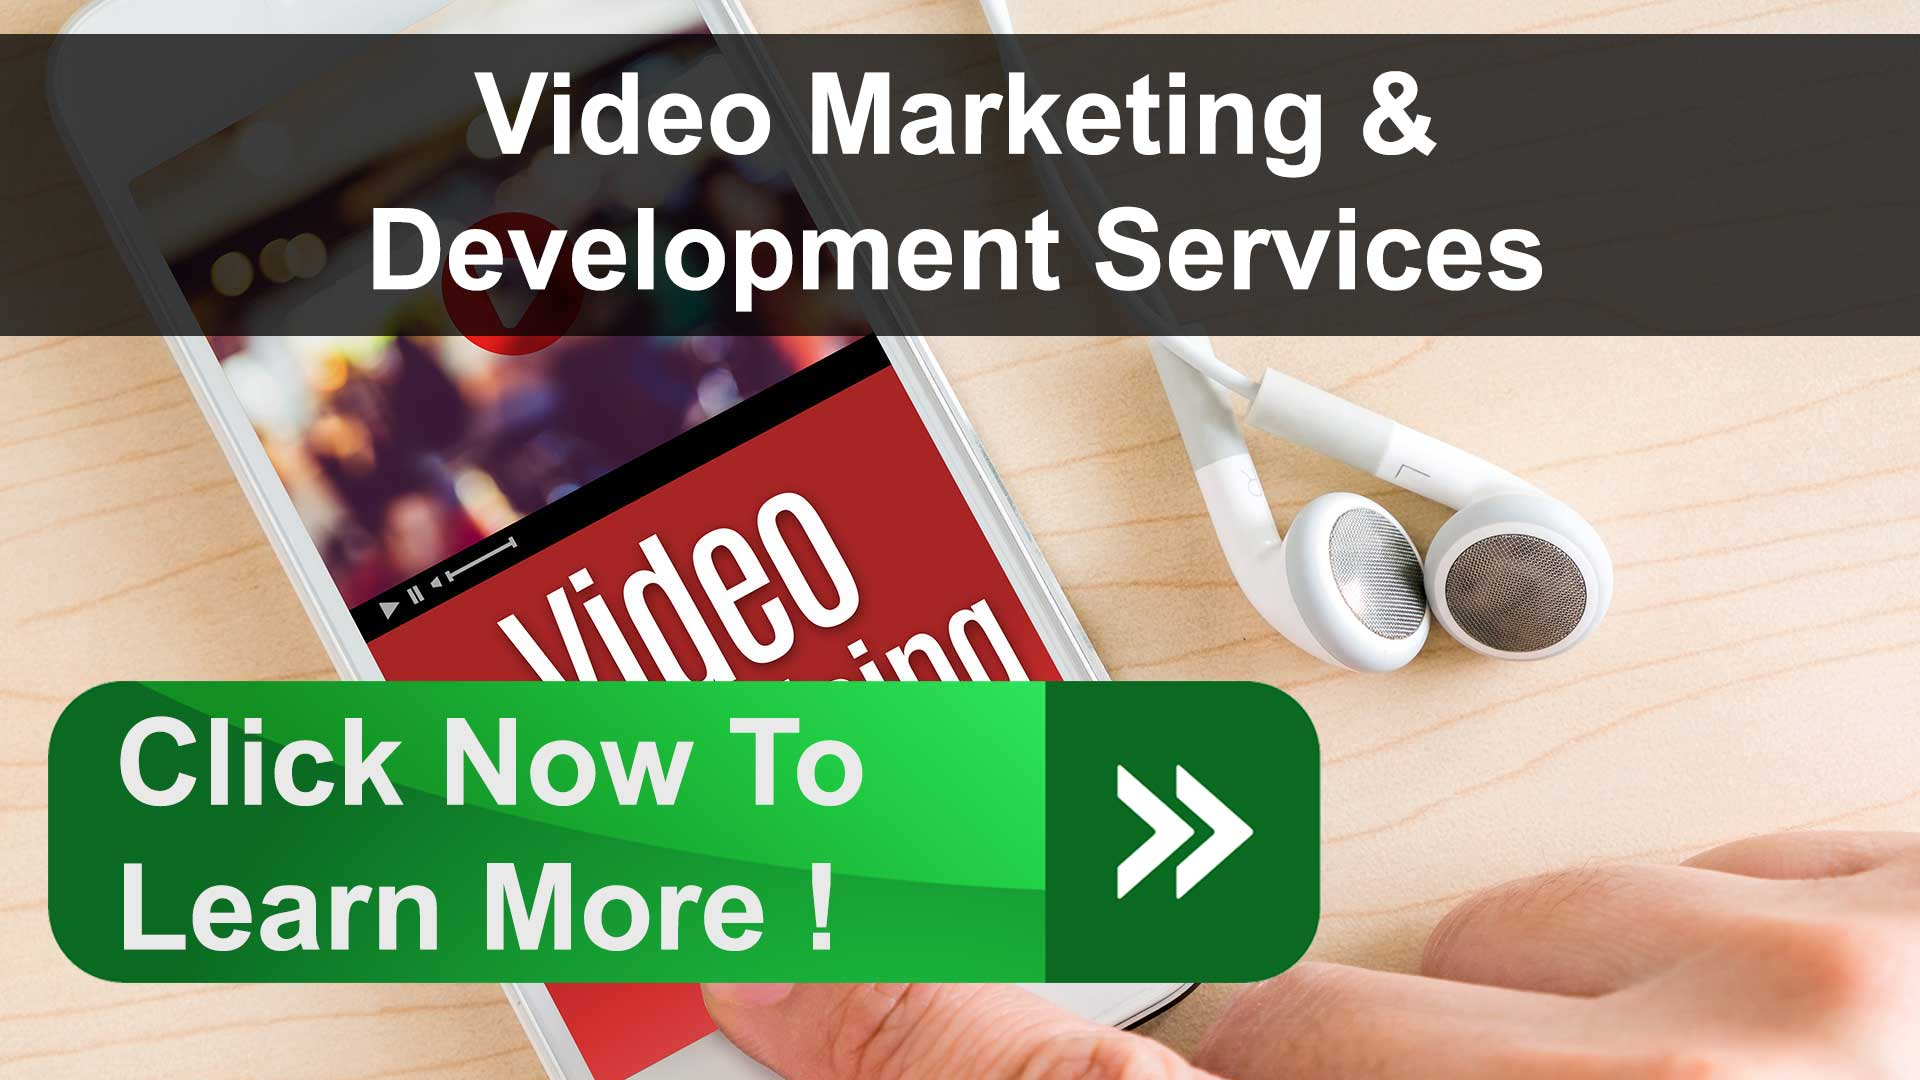 Company Video Marketing & Development Services